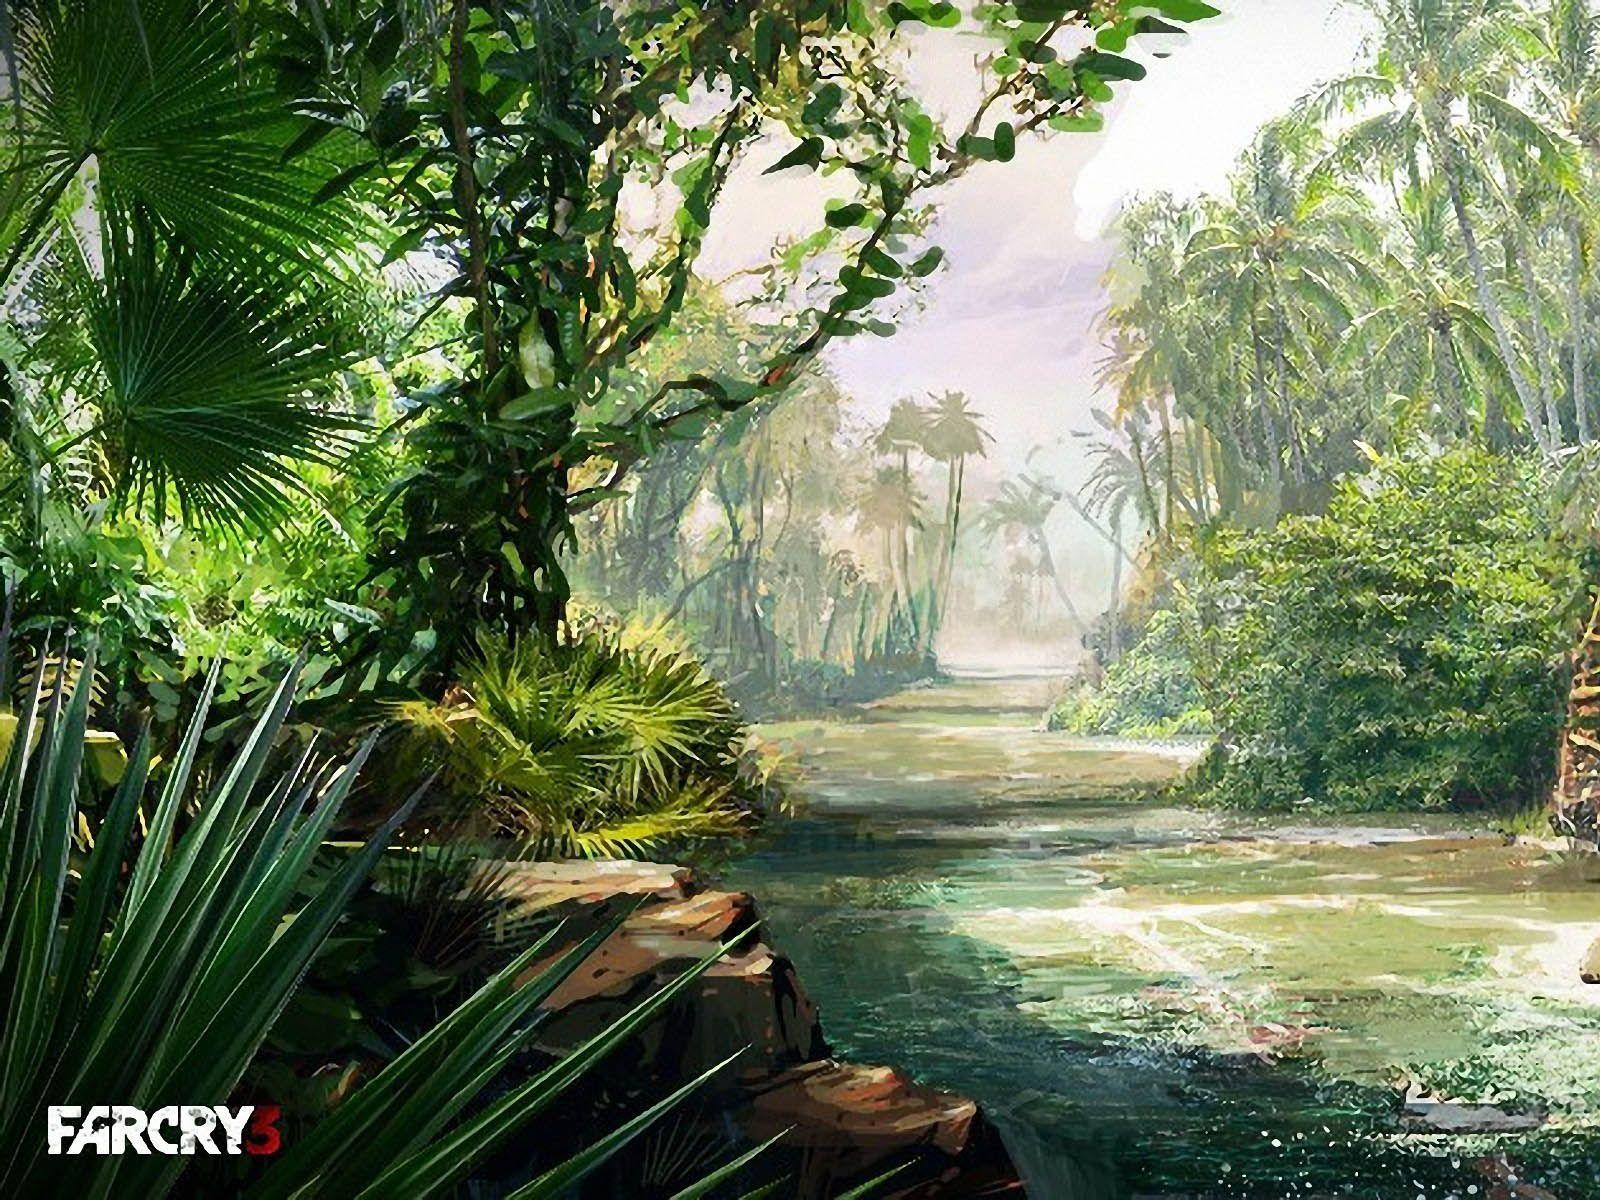 Far Cry 3 Wallpapers - Wallpaper Cave